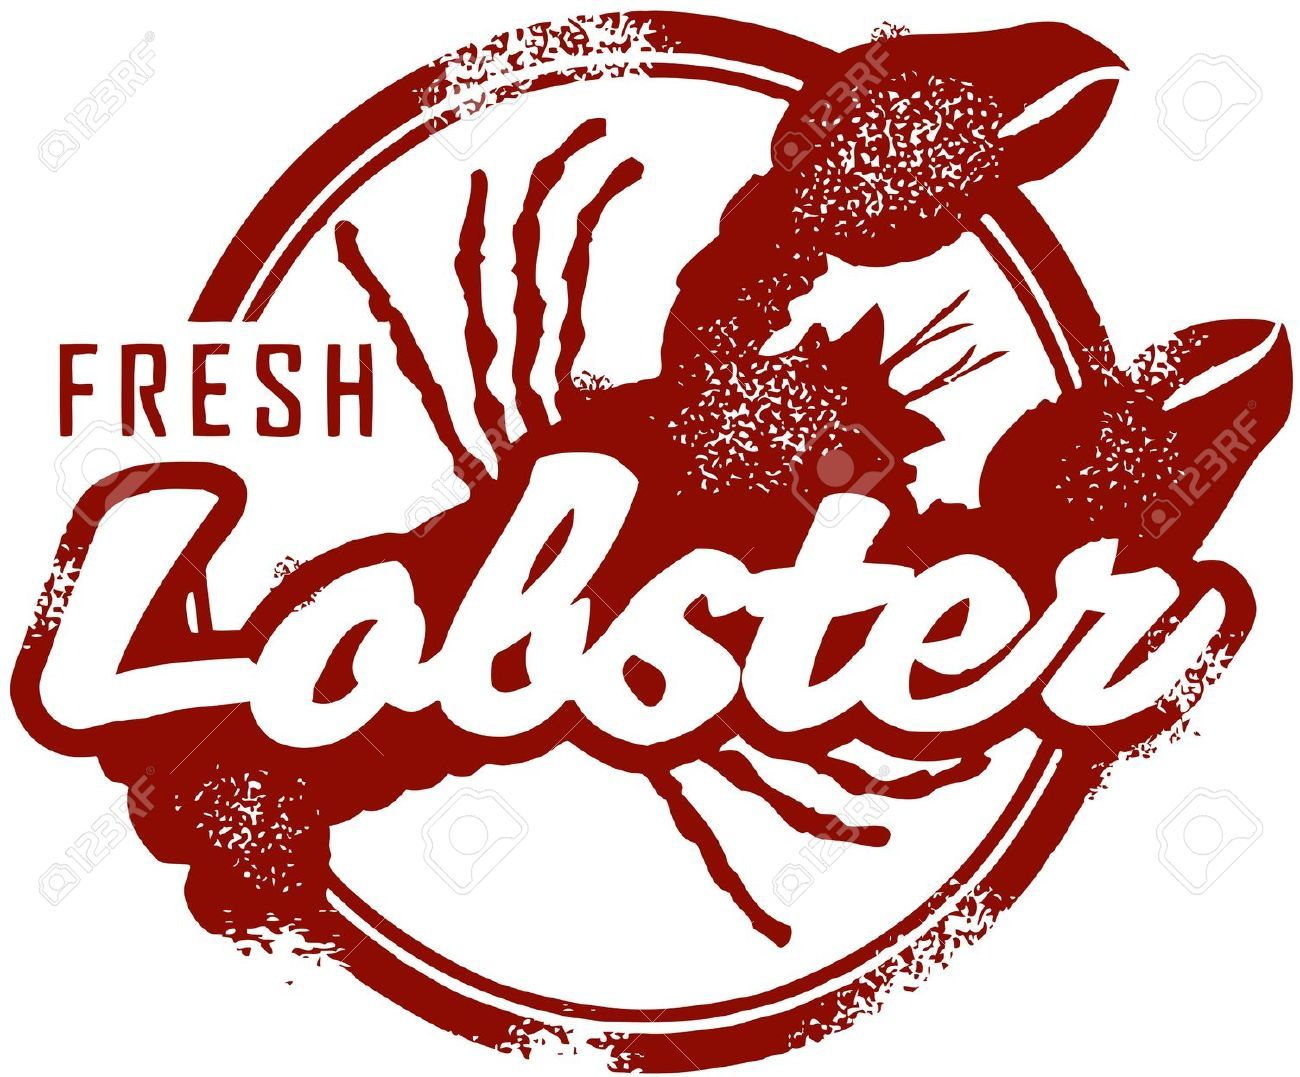 small resolution of lobster stock vector illustration and royalty free lobster clipart